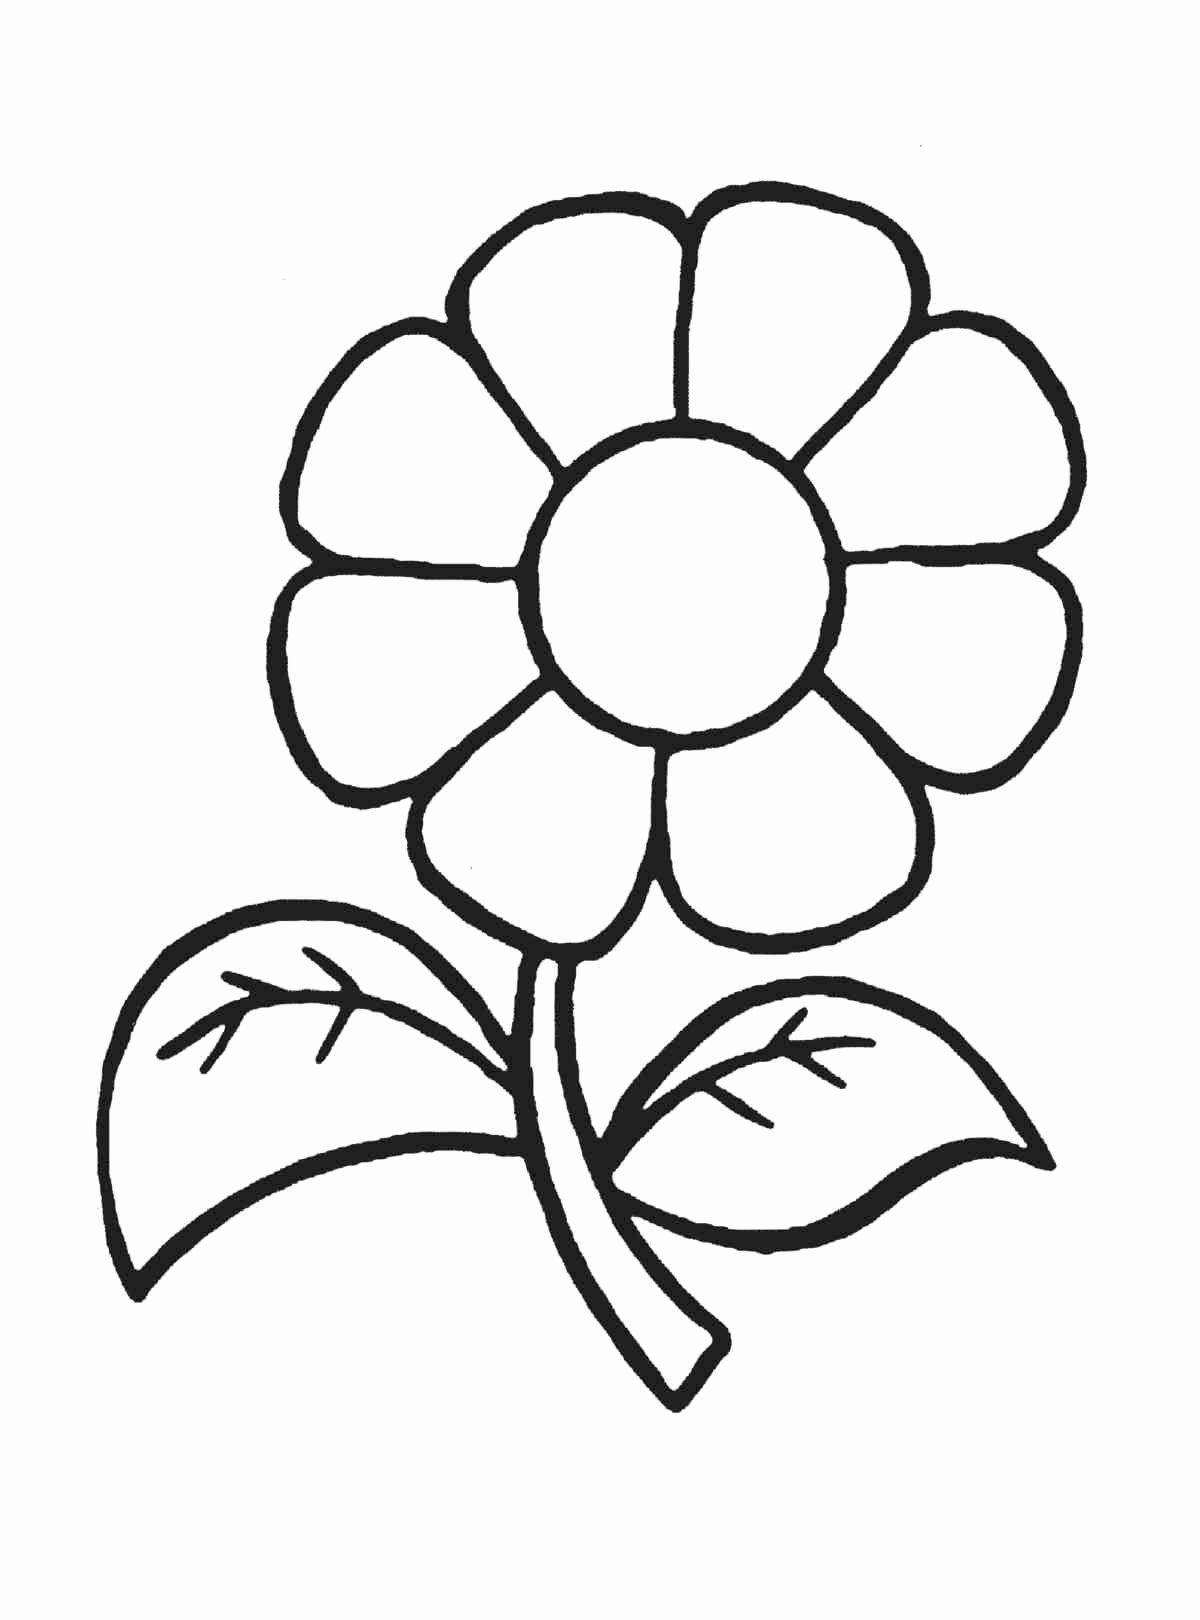 Coloring Books For 2 Year Olds Inspirational Coloring Pages For 2 To 3 Year Old Kids Download T Flower Coloring Pages Spring Coloring Pages Easy Coloring Pages